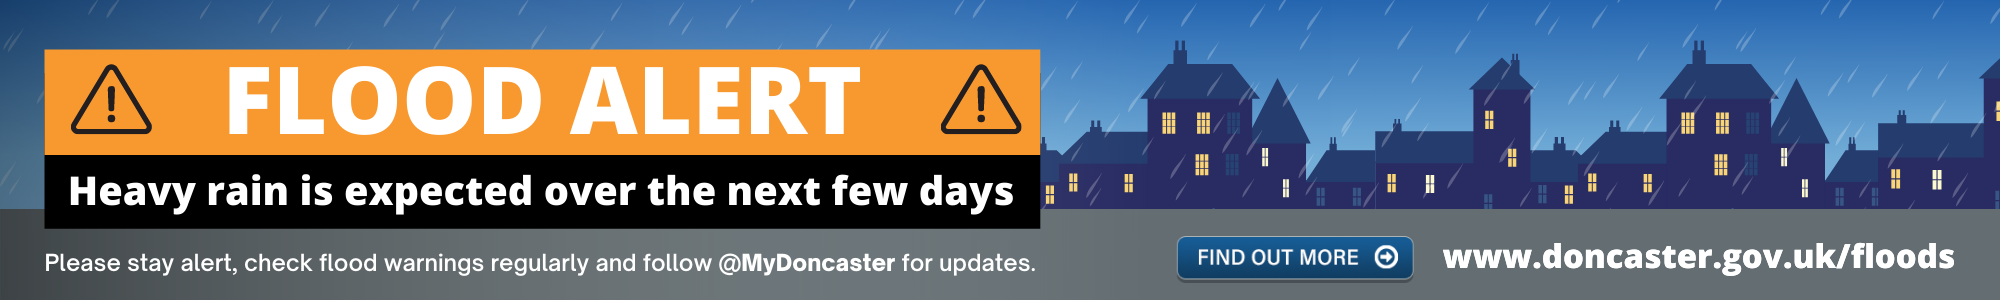 Flood warning for Doncaster. Stay alert and follow mydoncaster on social media for more updates.